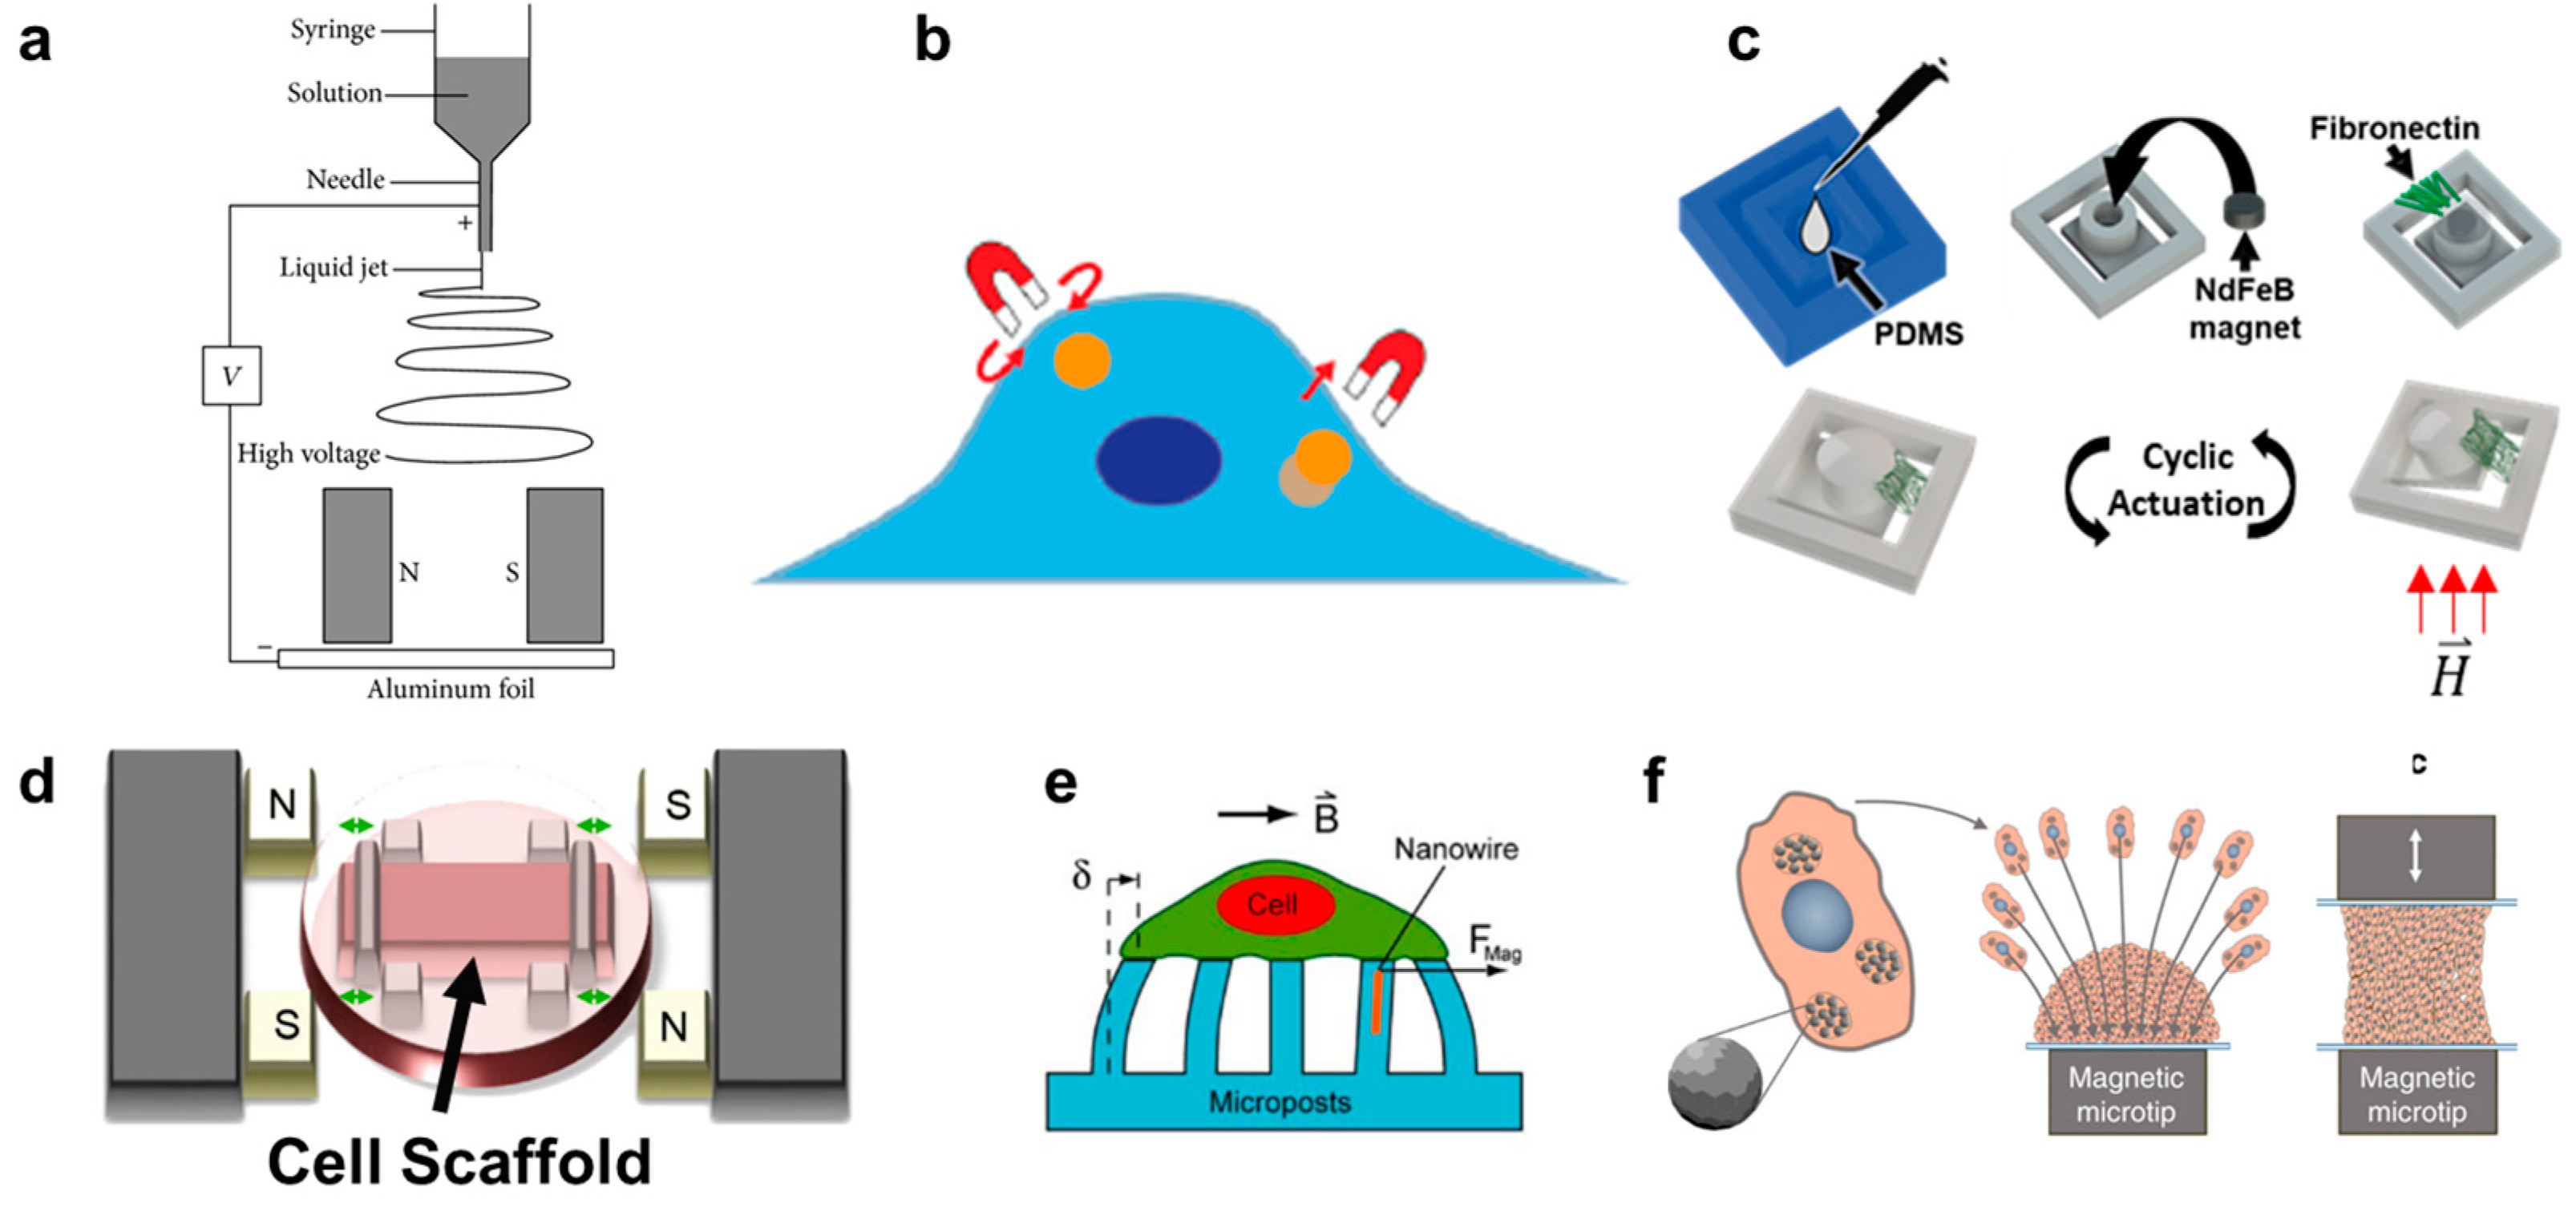 Our review of in vitro magnetic techniques for cancer research is published at Cancers!